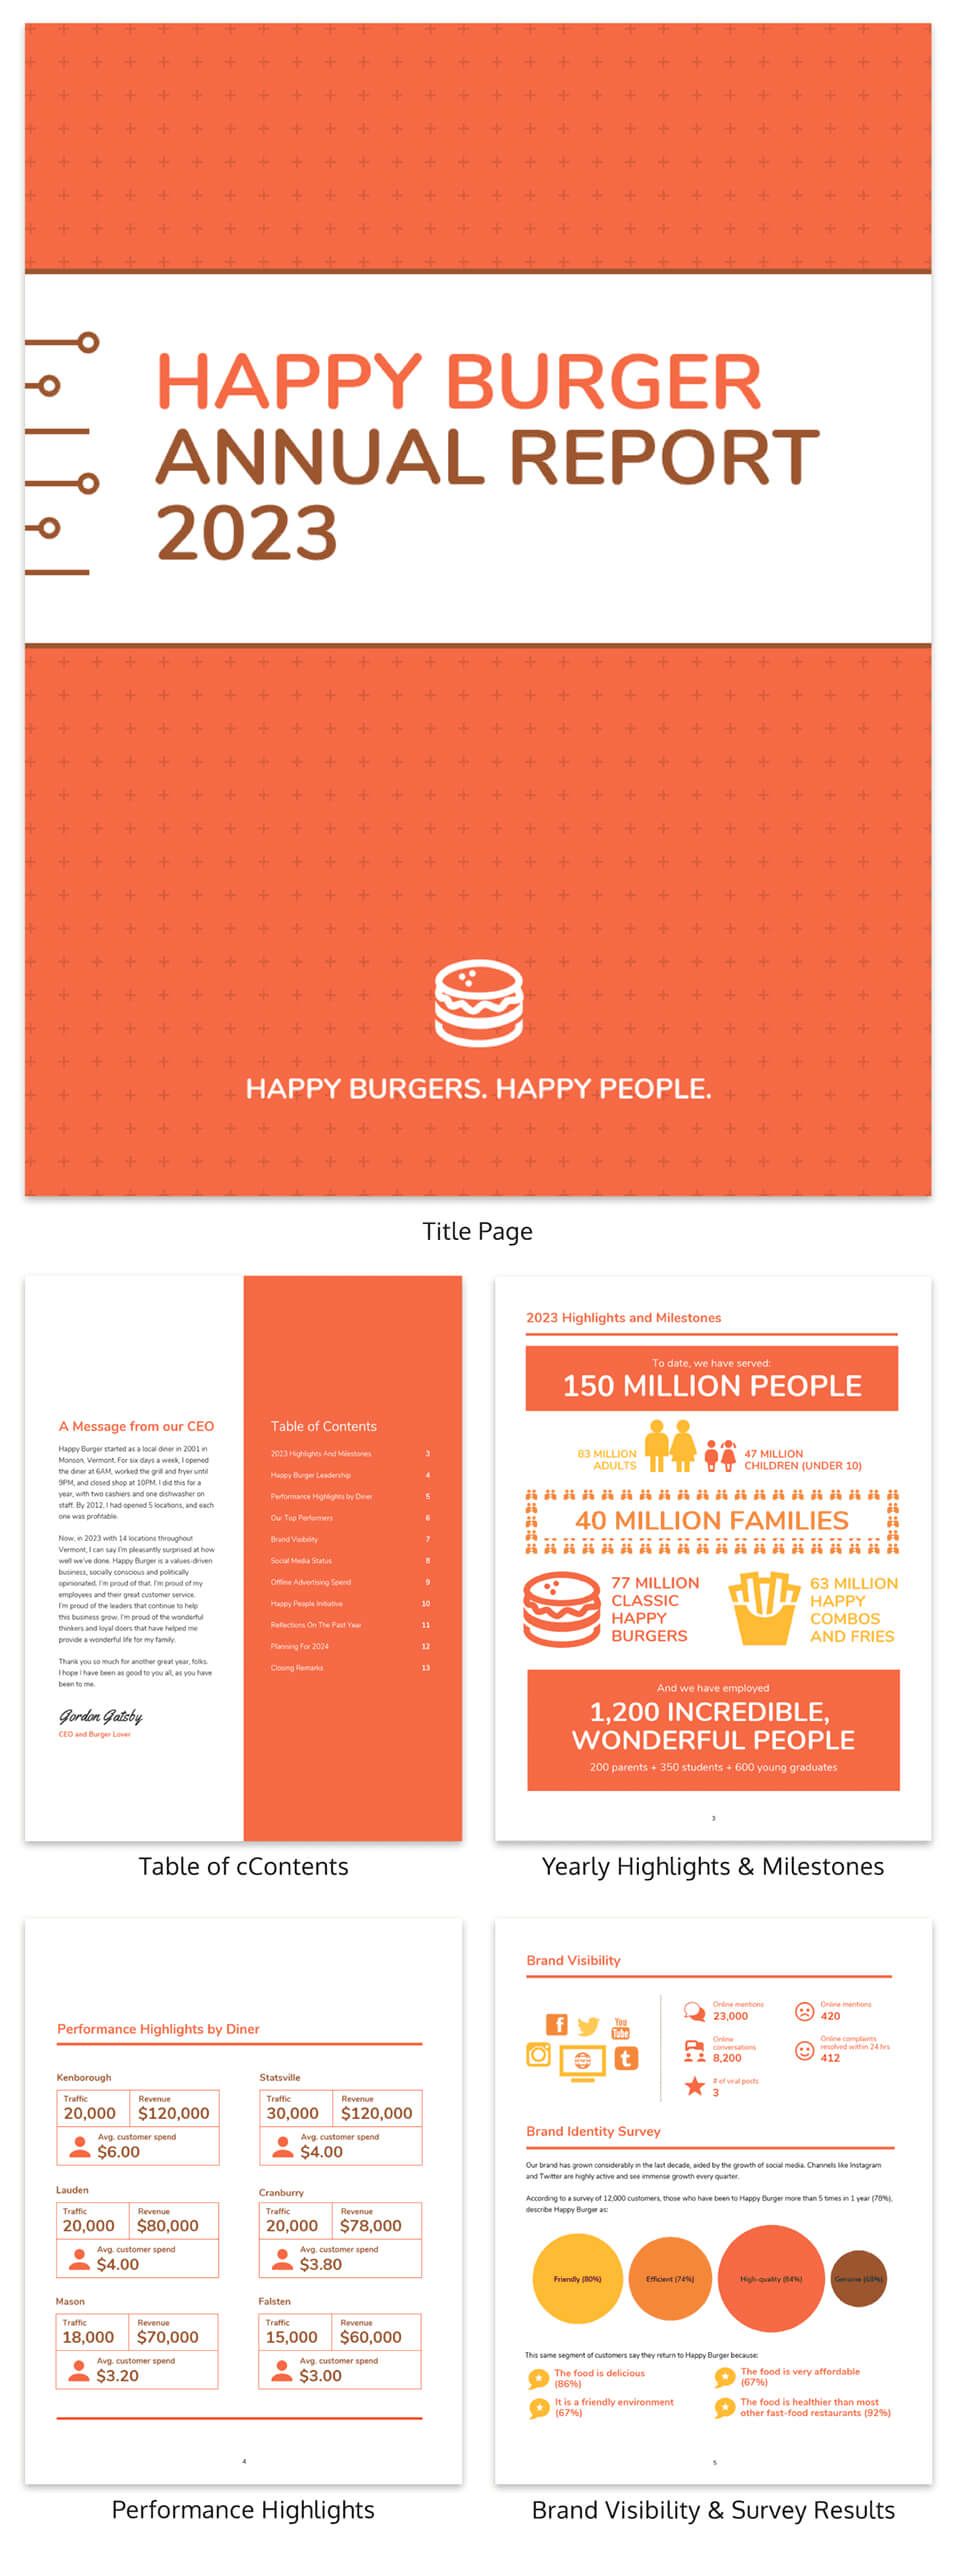 55+ Customizable Annual Report Design Templates, Examples & Tips Within Hr Annual Report Template